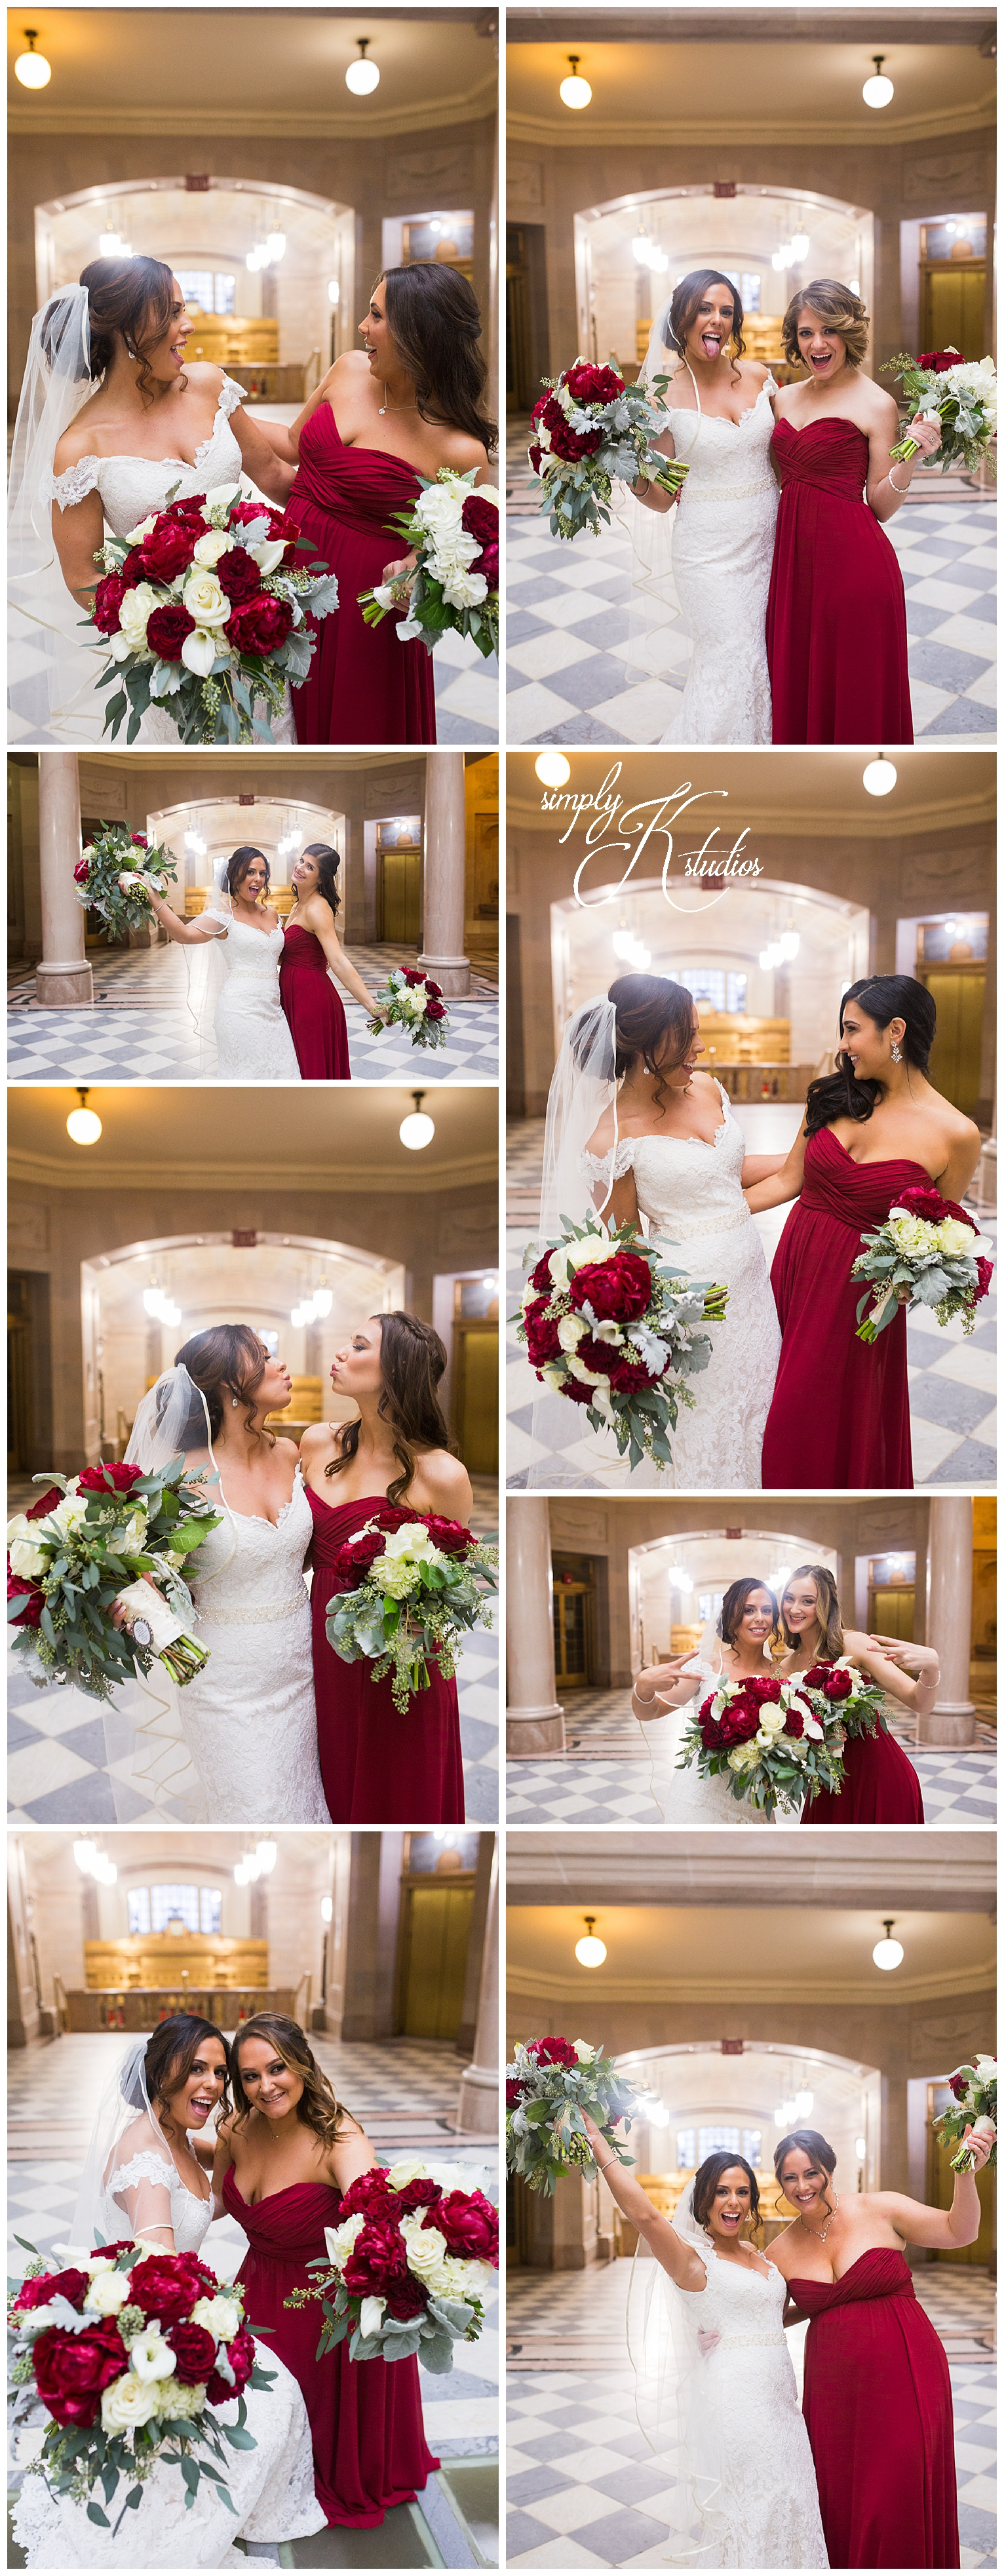 49 Weddings at City Hall in Hartford CT.jpg